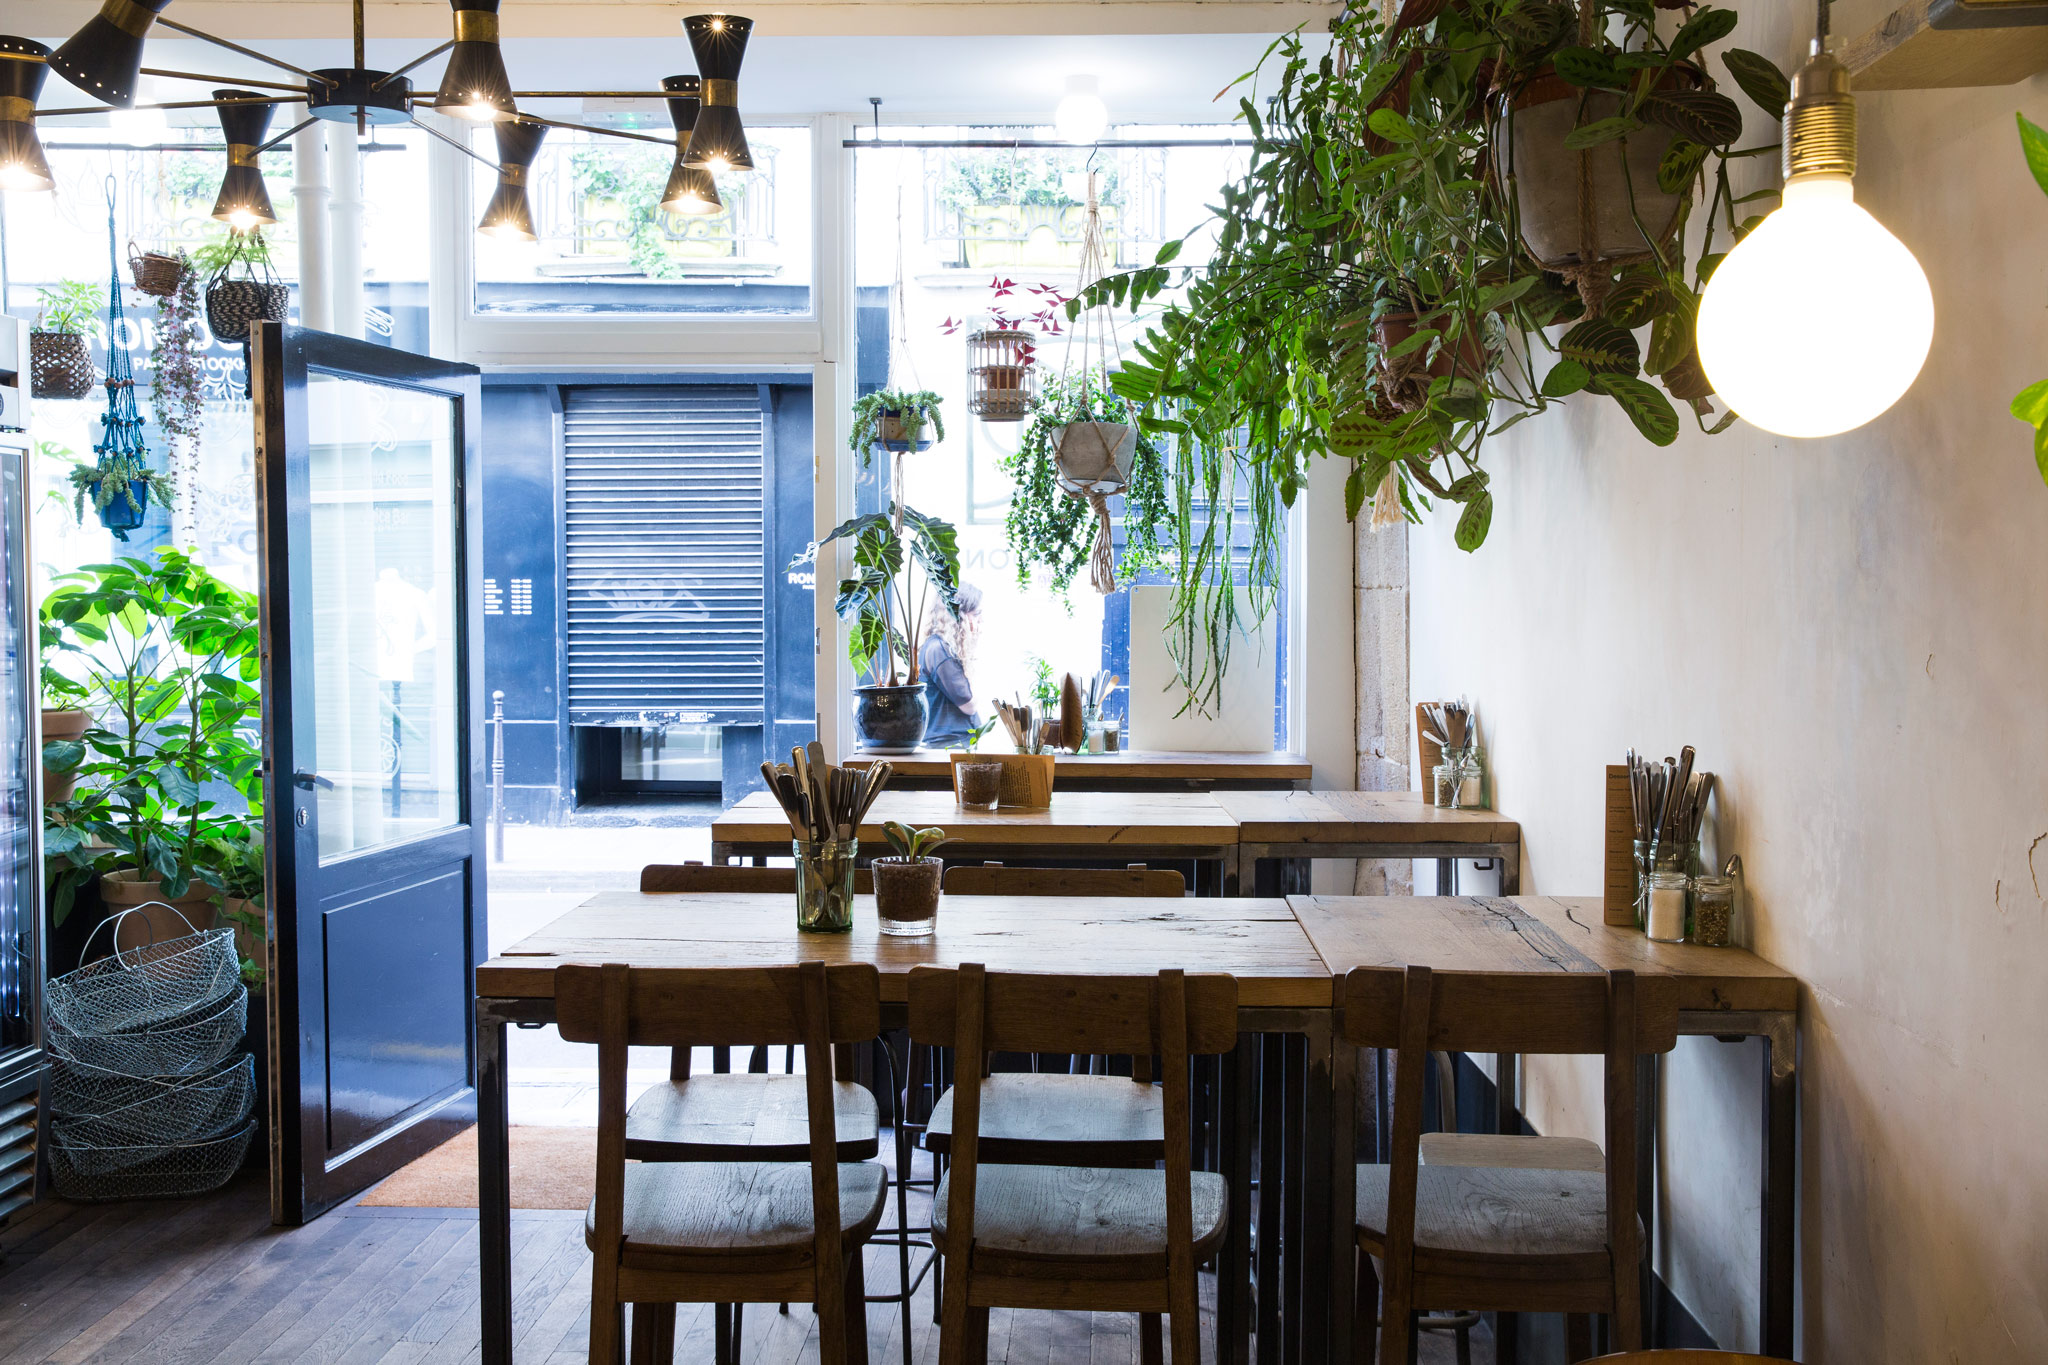 HiP Paris' guide to gluten-free restaurants and bakeries in Paris, includes Wild and the Moon with its pretty rustic interiors and plants hanging from the ceiling.